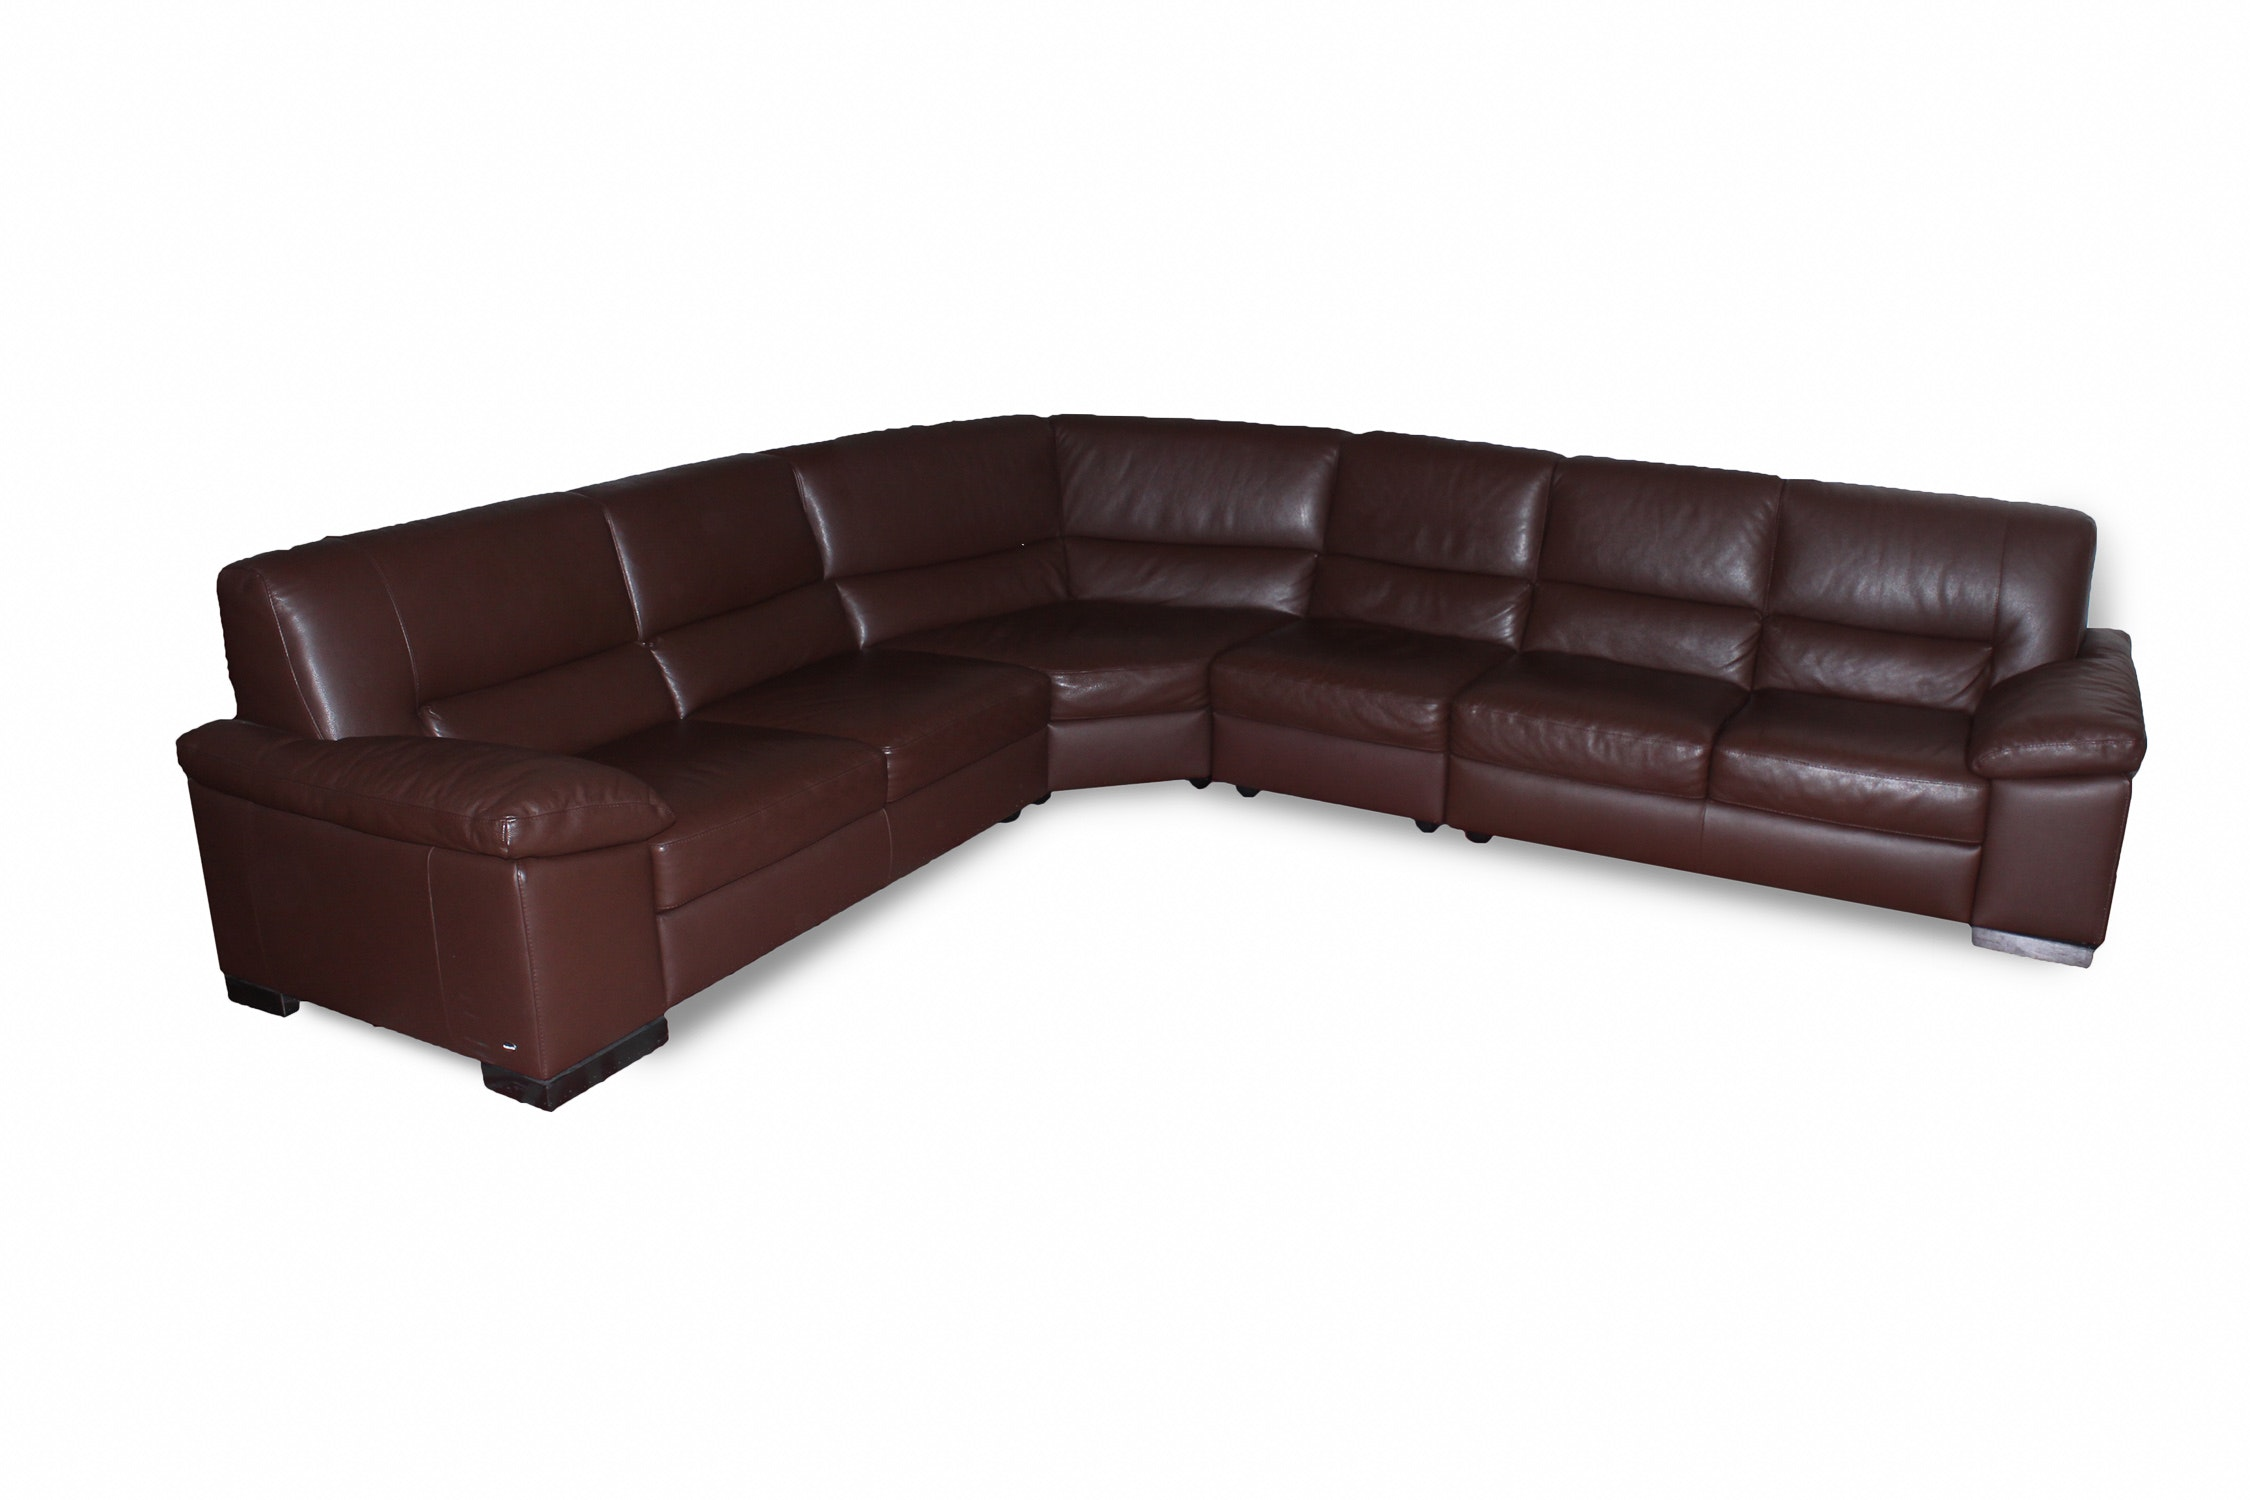 Ordinaire Italsofa Brown Leather Sectional ...